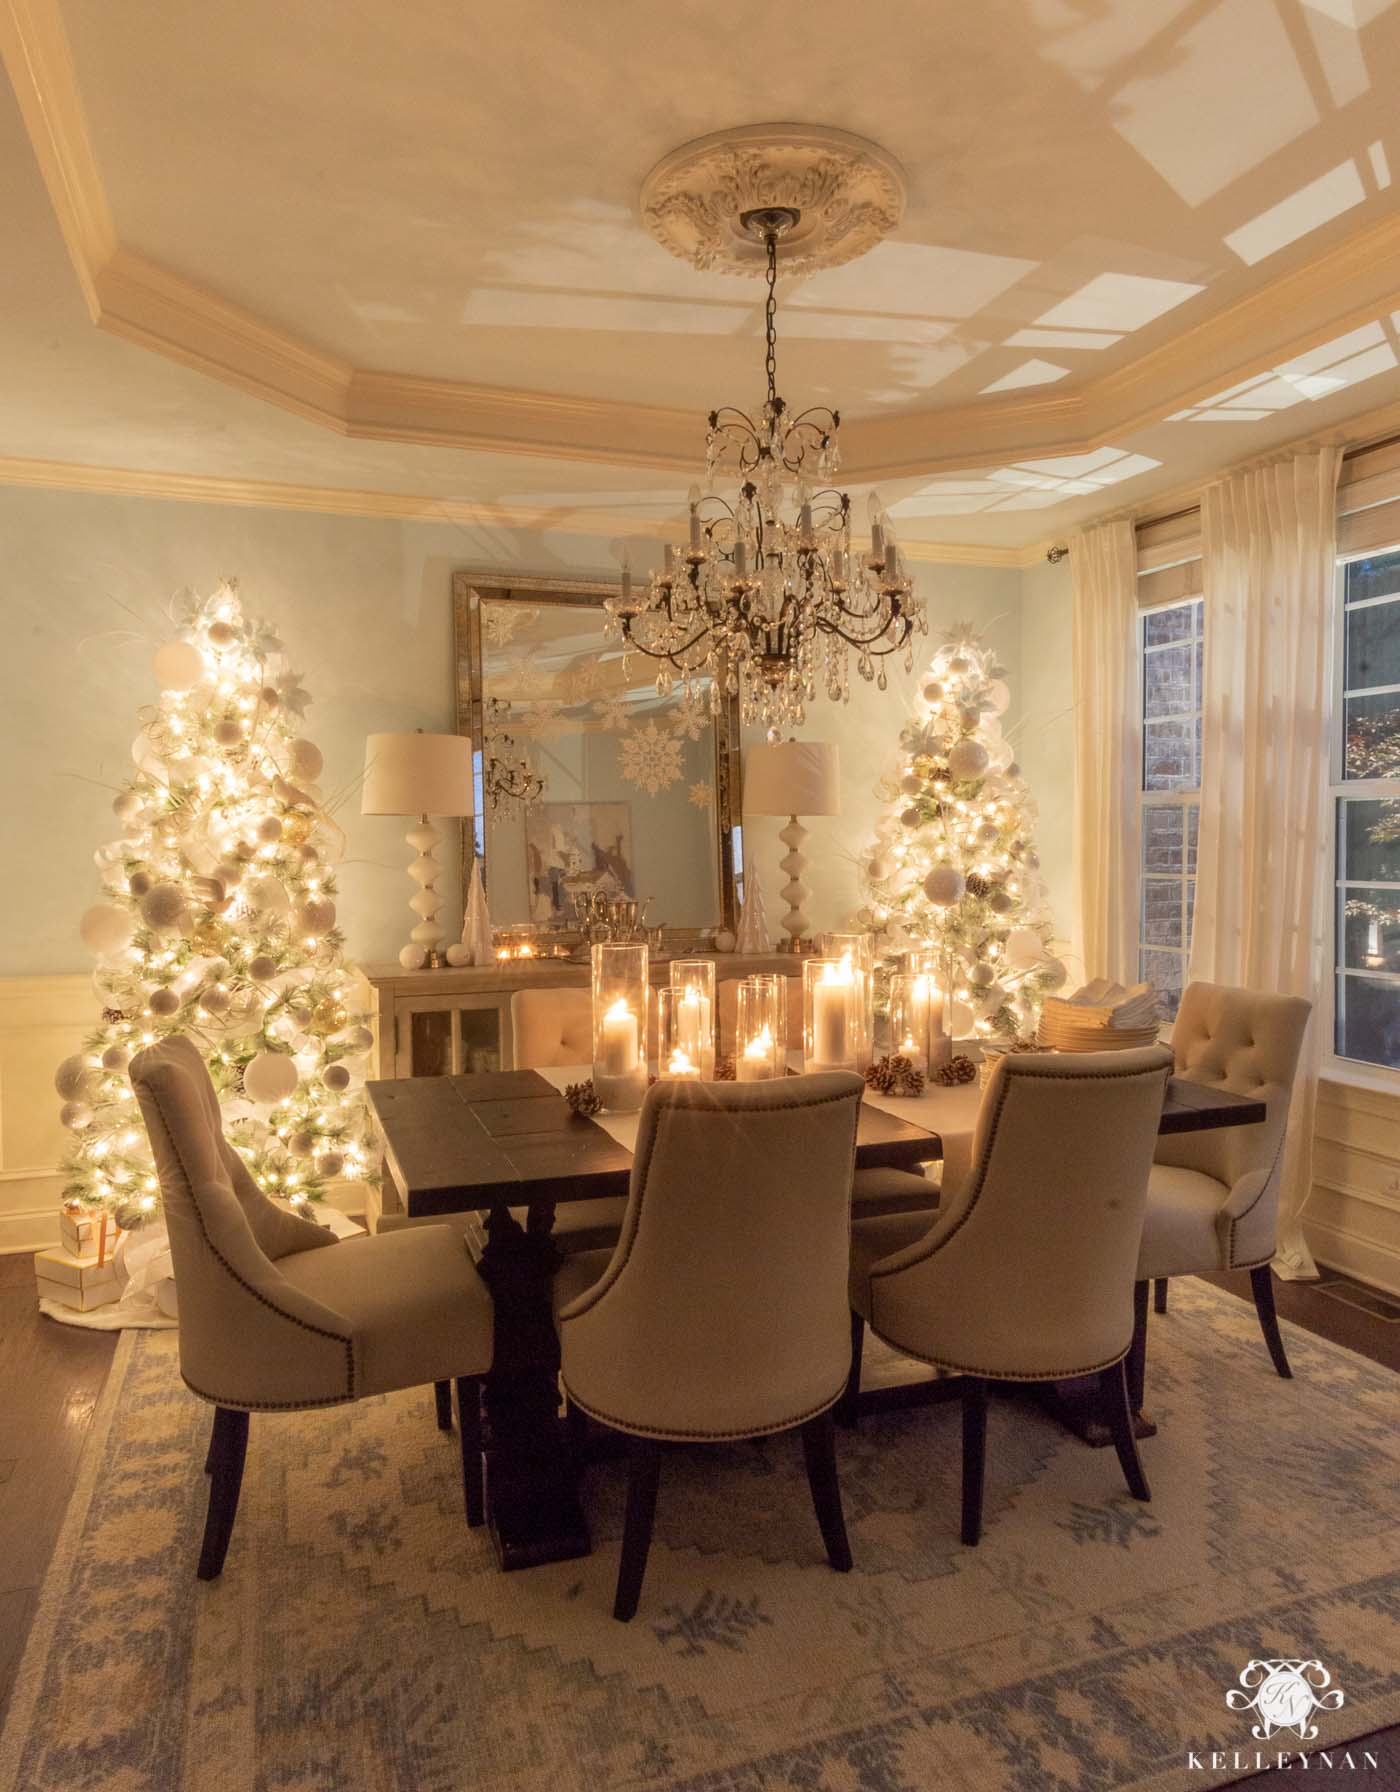 Cozy Christmas Decor -- Matching Flocked Christmas trees and Candlelight in the Dining Room